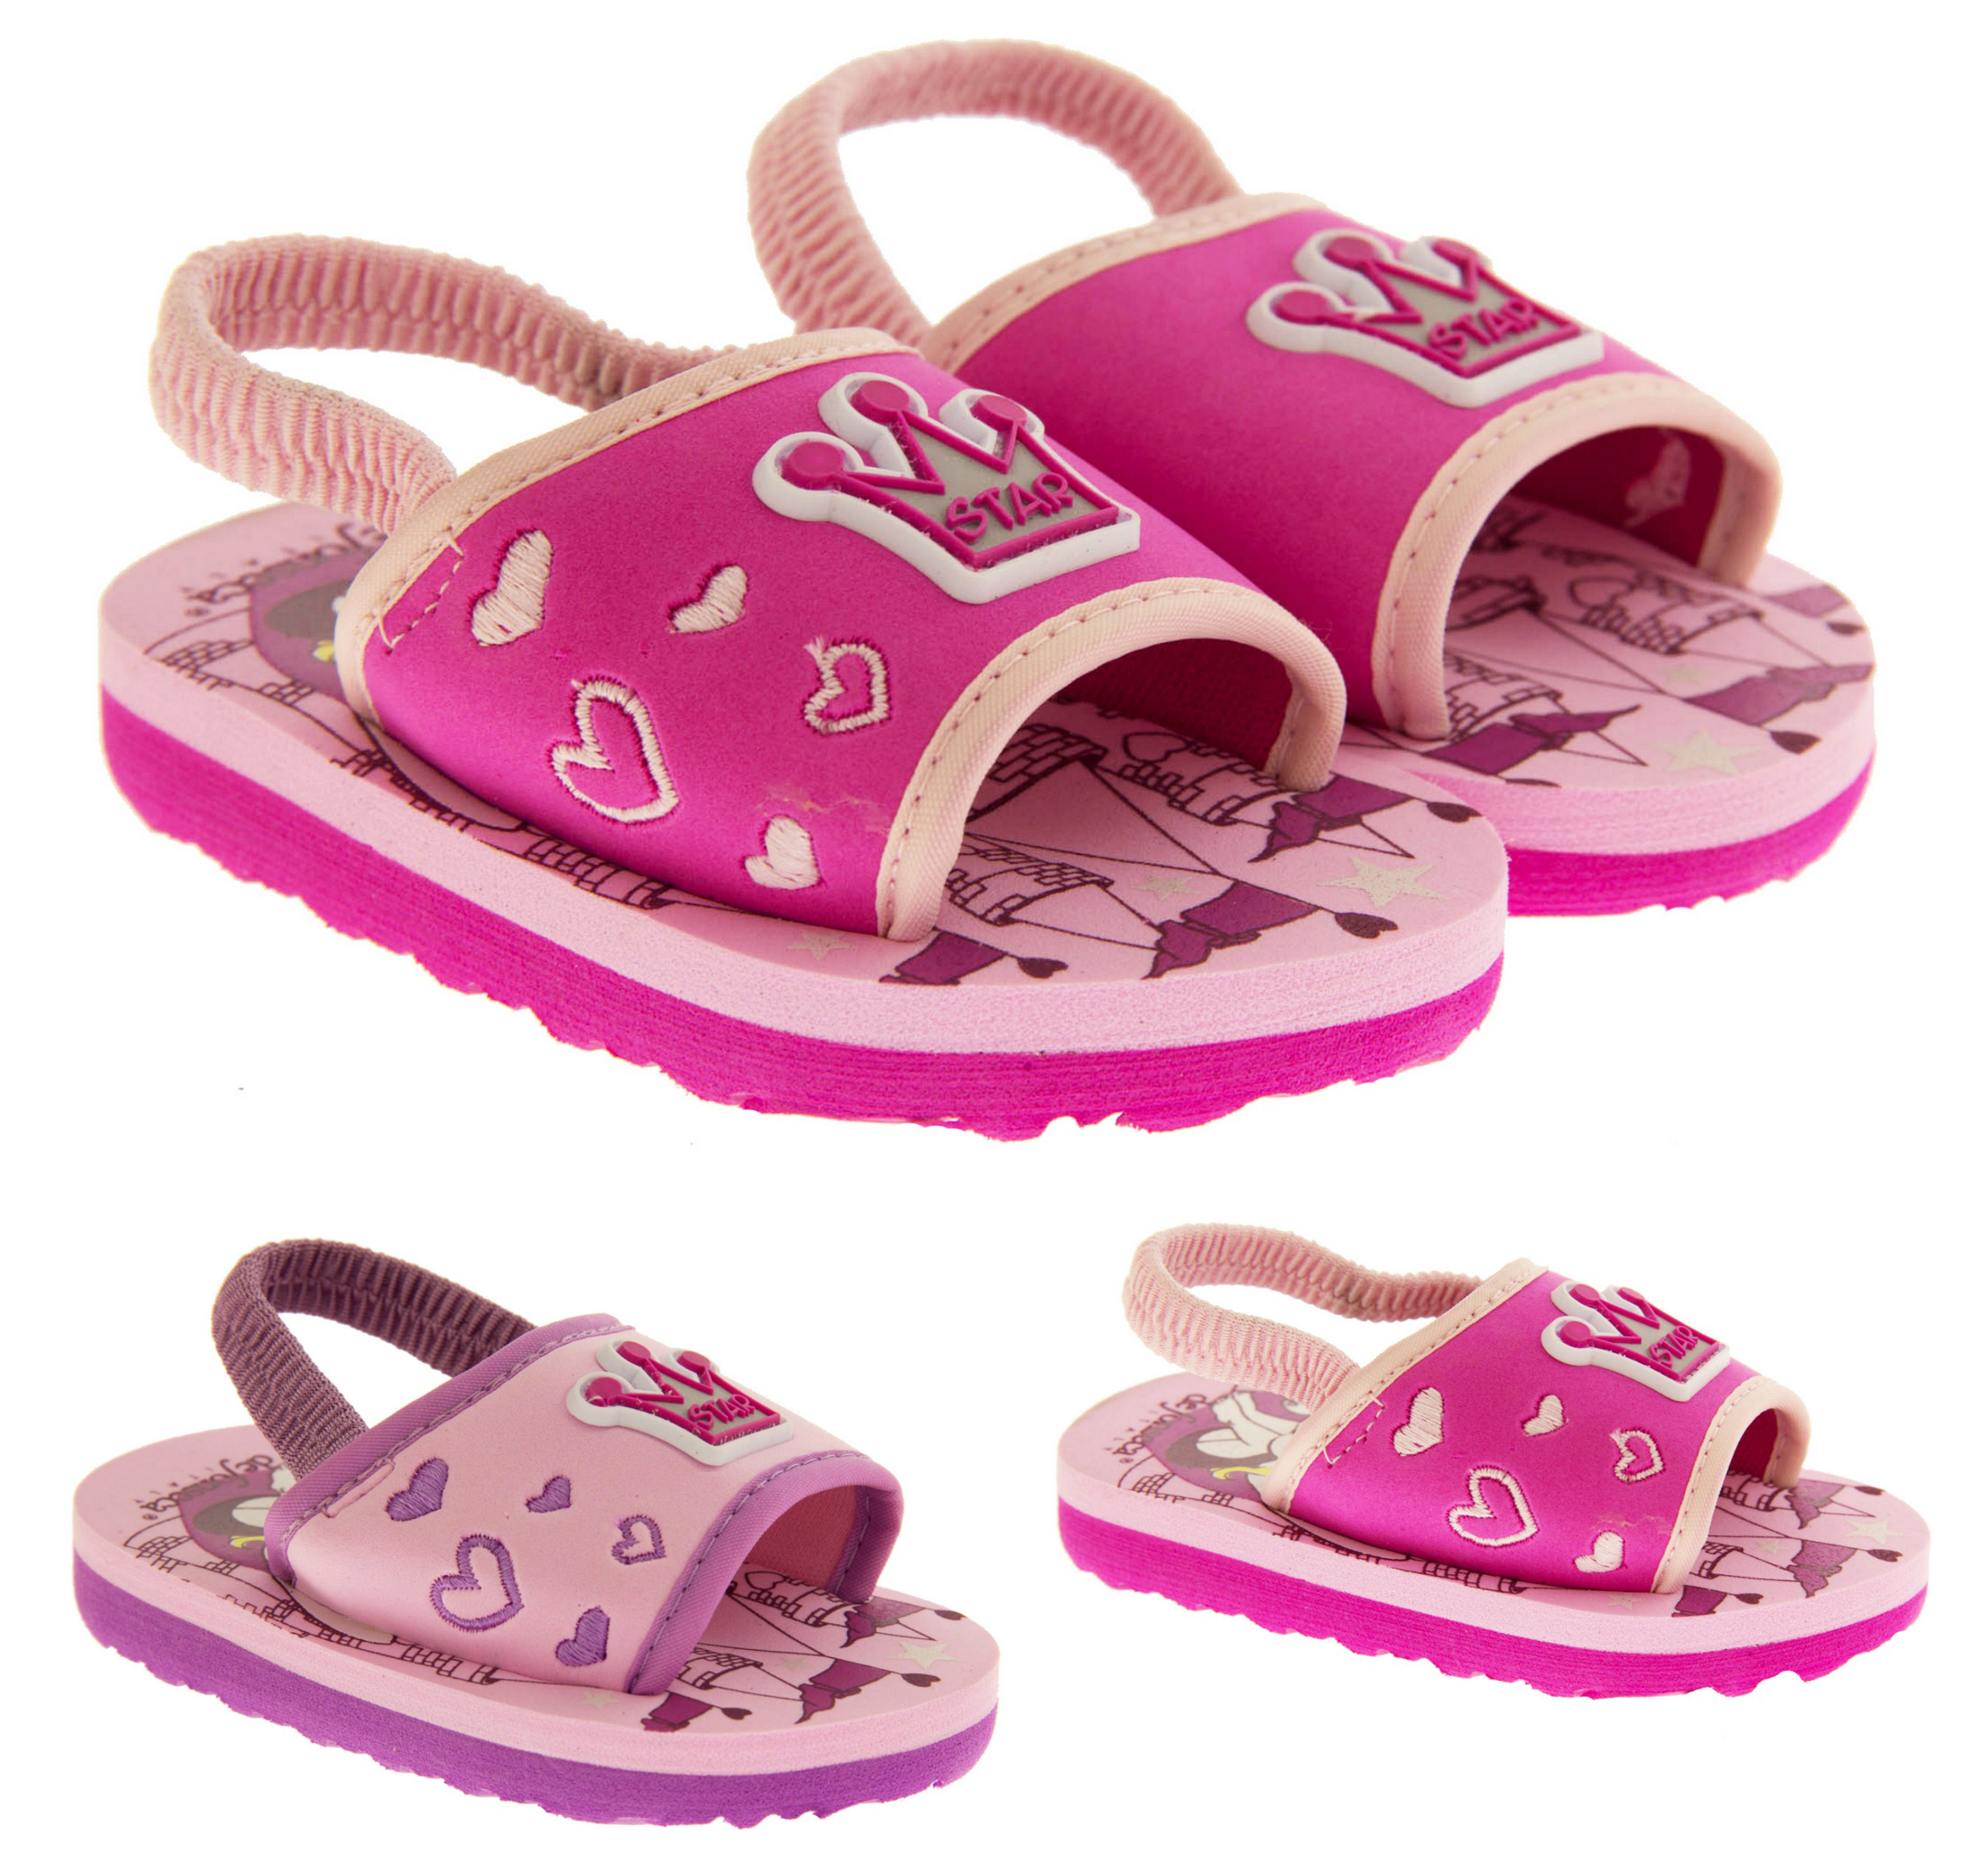 When shopping for a more formal outfit, baby girl dress shoes are the perfect addition. For fun in the sun, baby girl sandals are the way to go! For any outfit or occasion, Kohl's has the right pair of baby shoes for your little one.